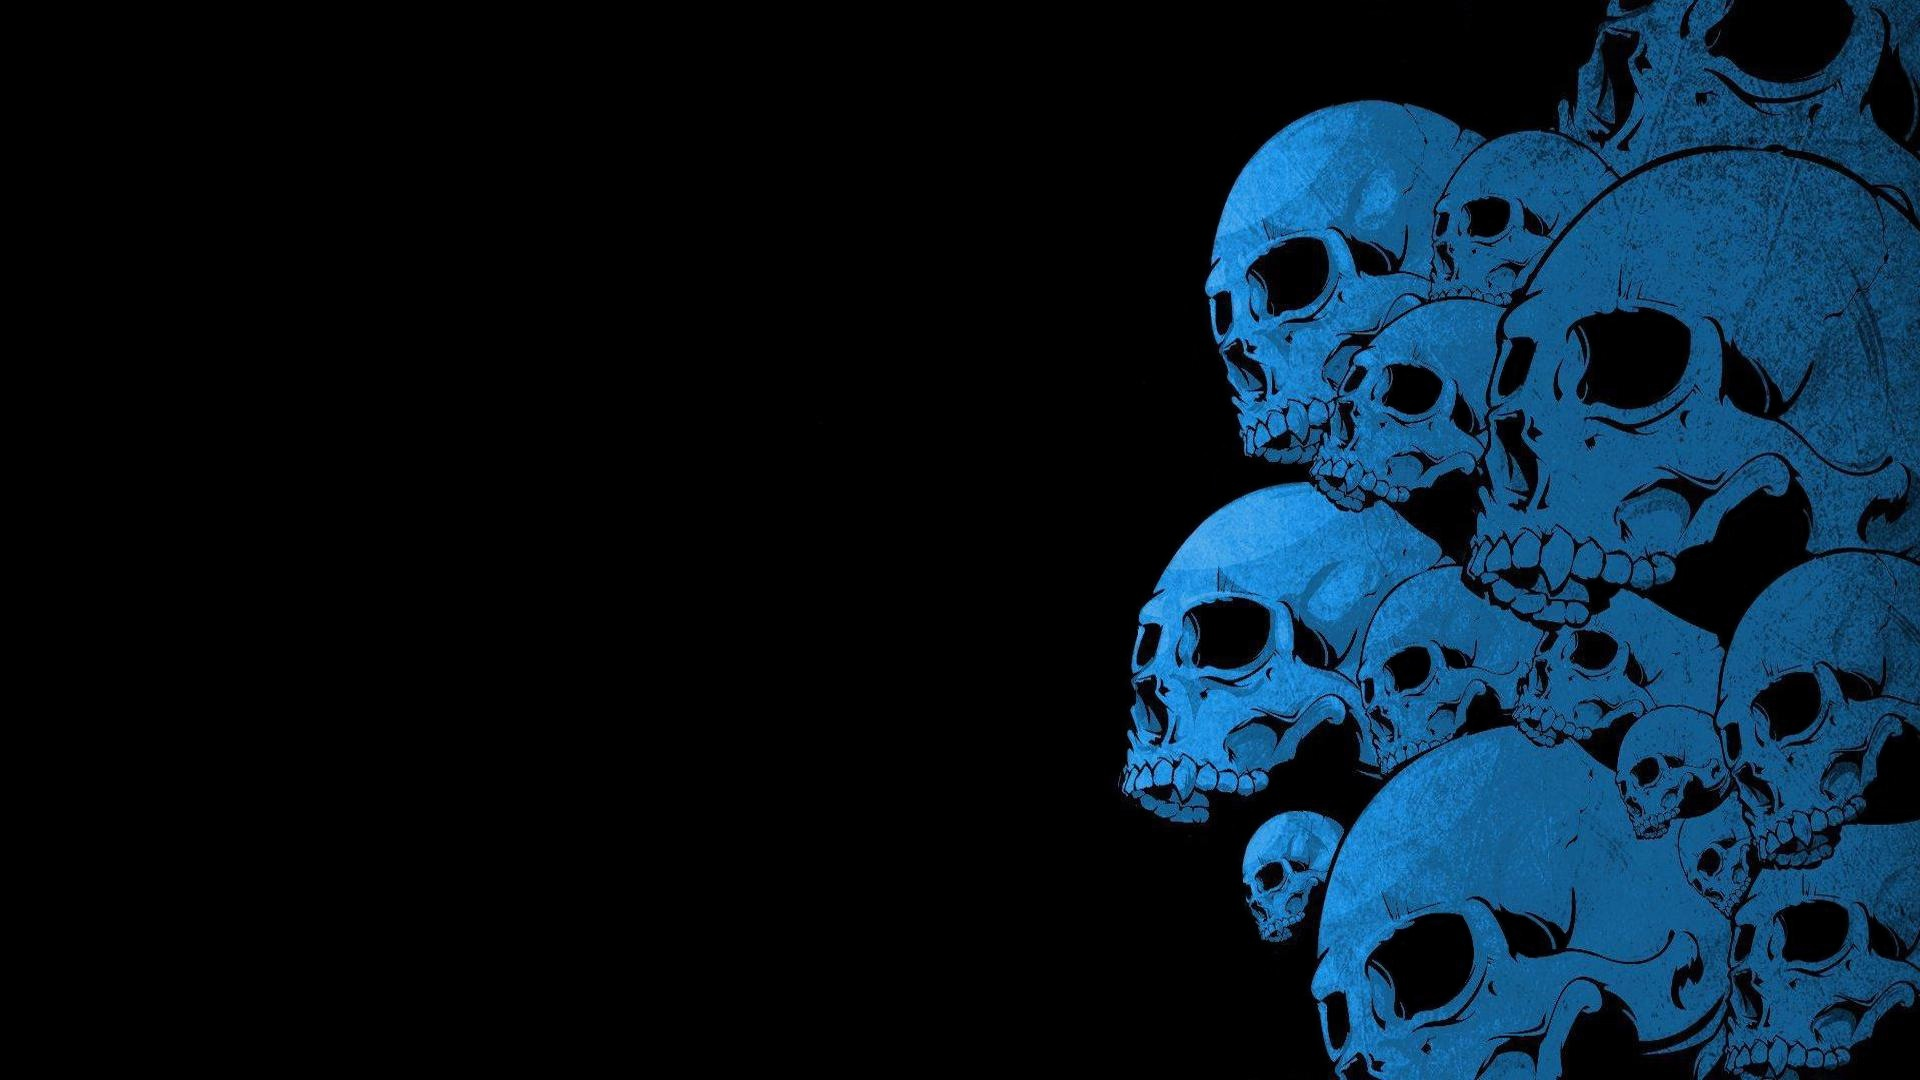 15764 download wallpaper Background, Death, Pictures screensavers and pictures for free